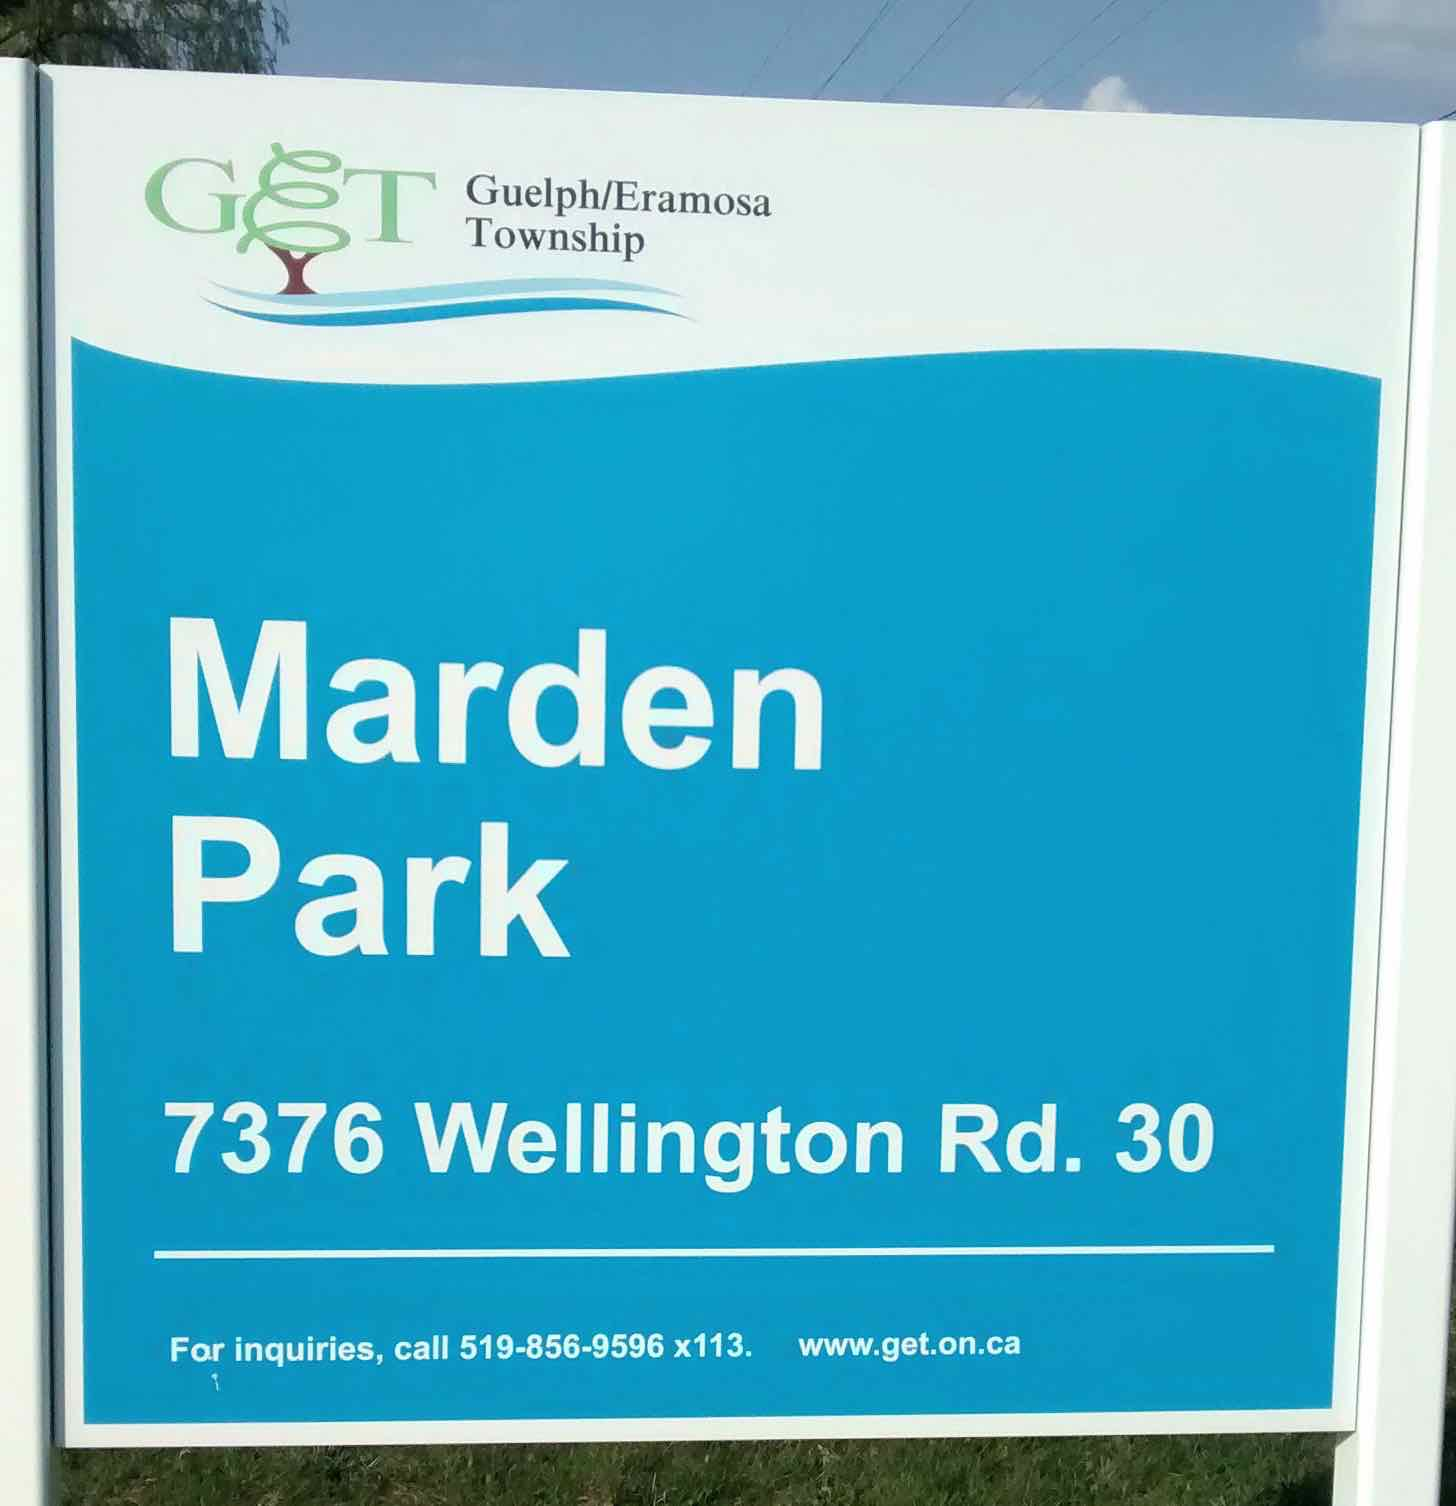 Marden Park and Community Centre and Park Guelph Eramosa Township AA